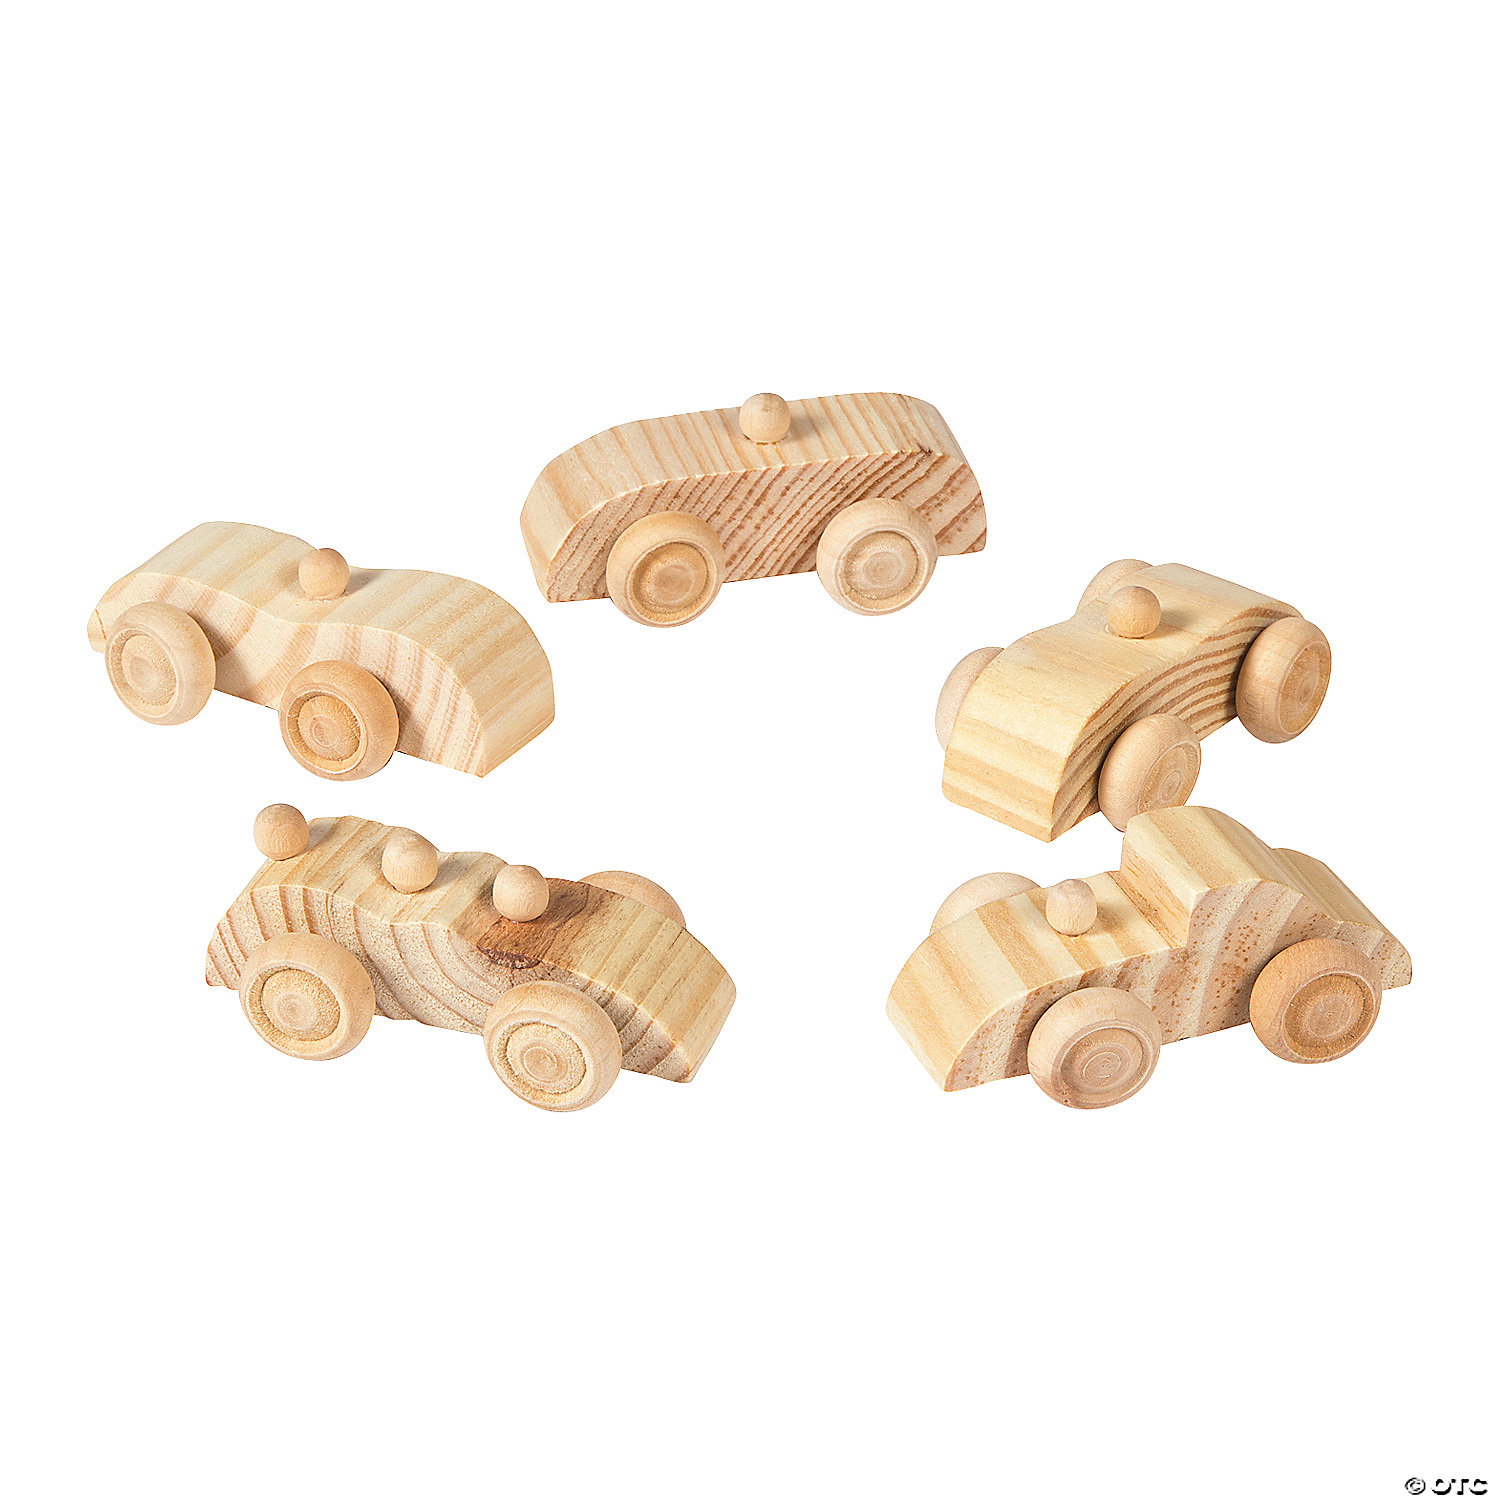 Co color in cars activity - Diy Unfinished Wood Cars